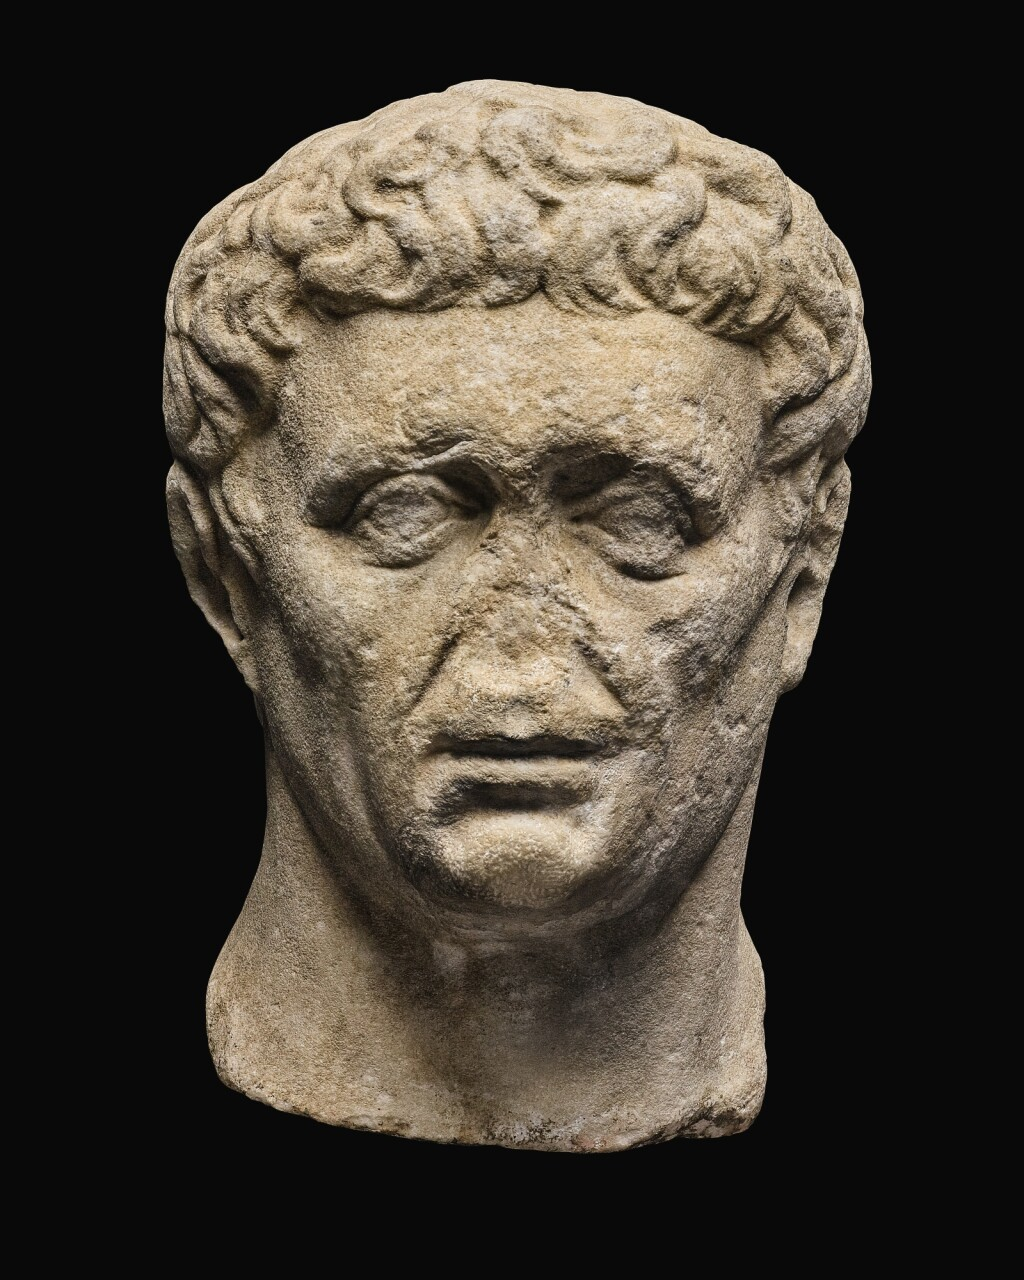 A ROMAN MONUMENTAL MARBLE PORTRAIT HEAD OF NERVA, LATE 1ST CENTURY A.D.